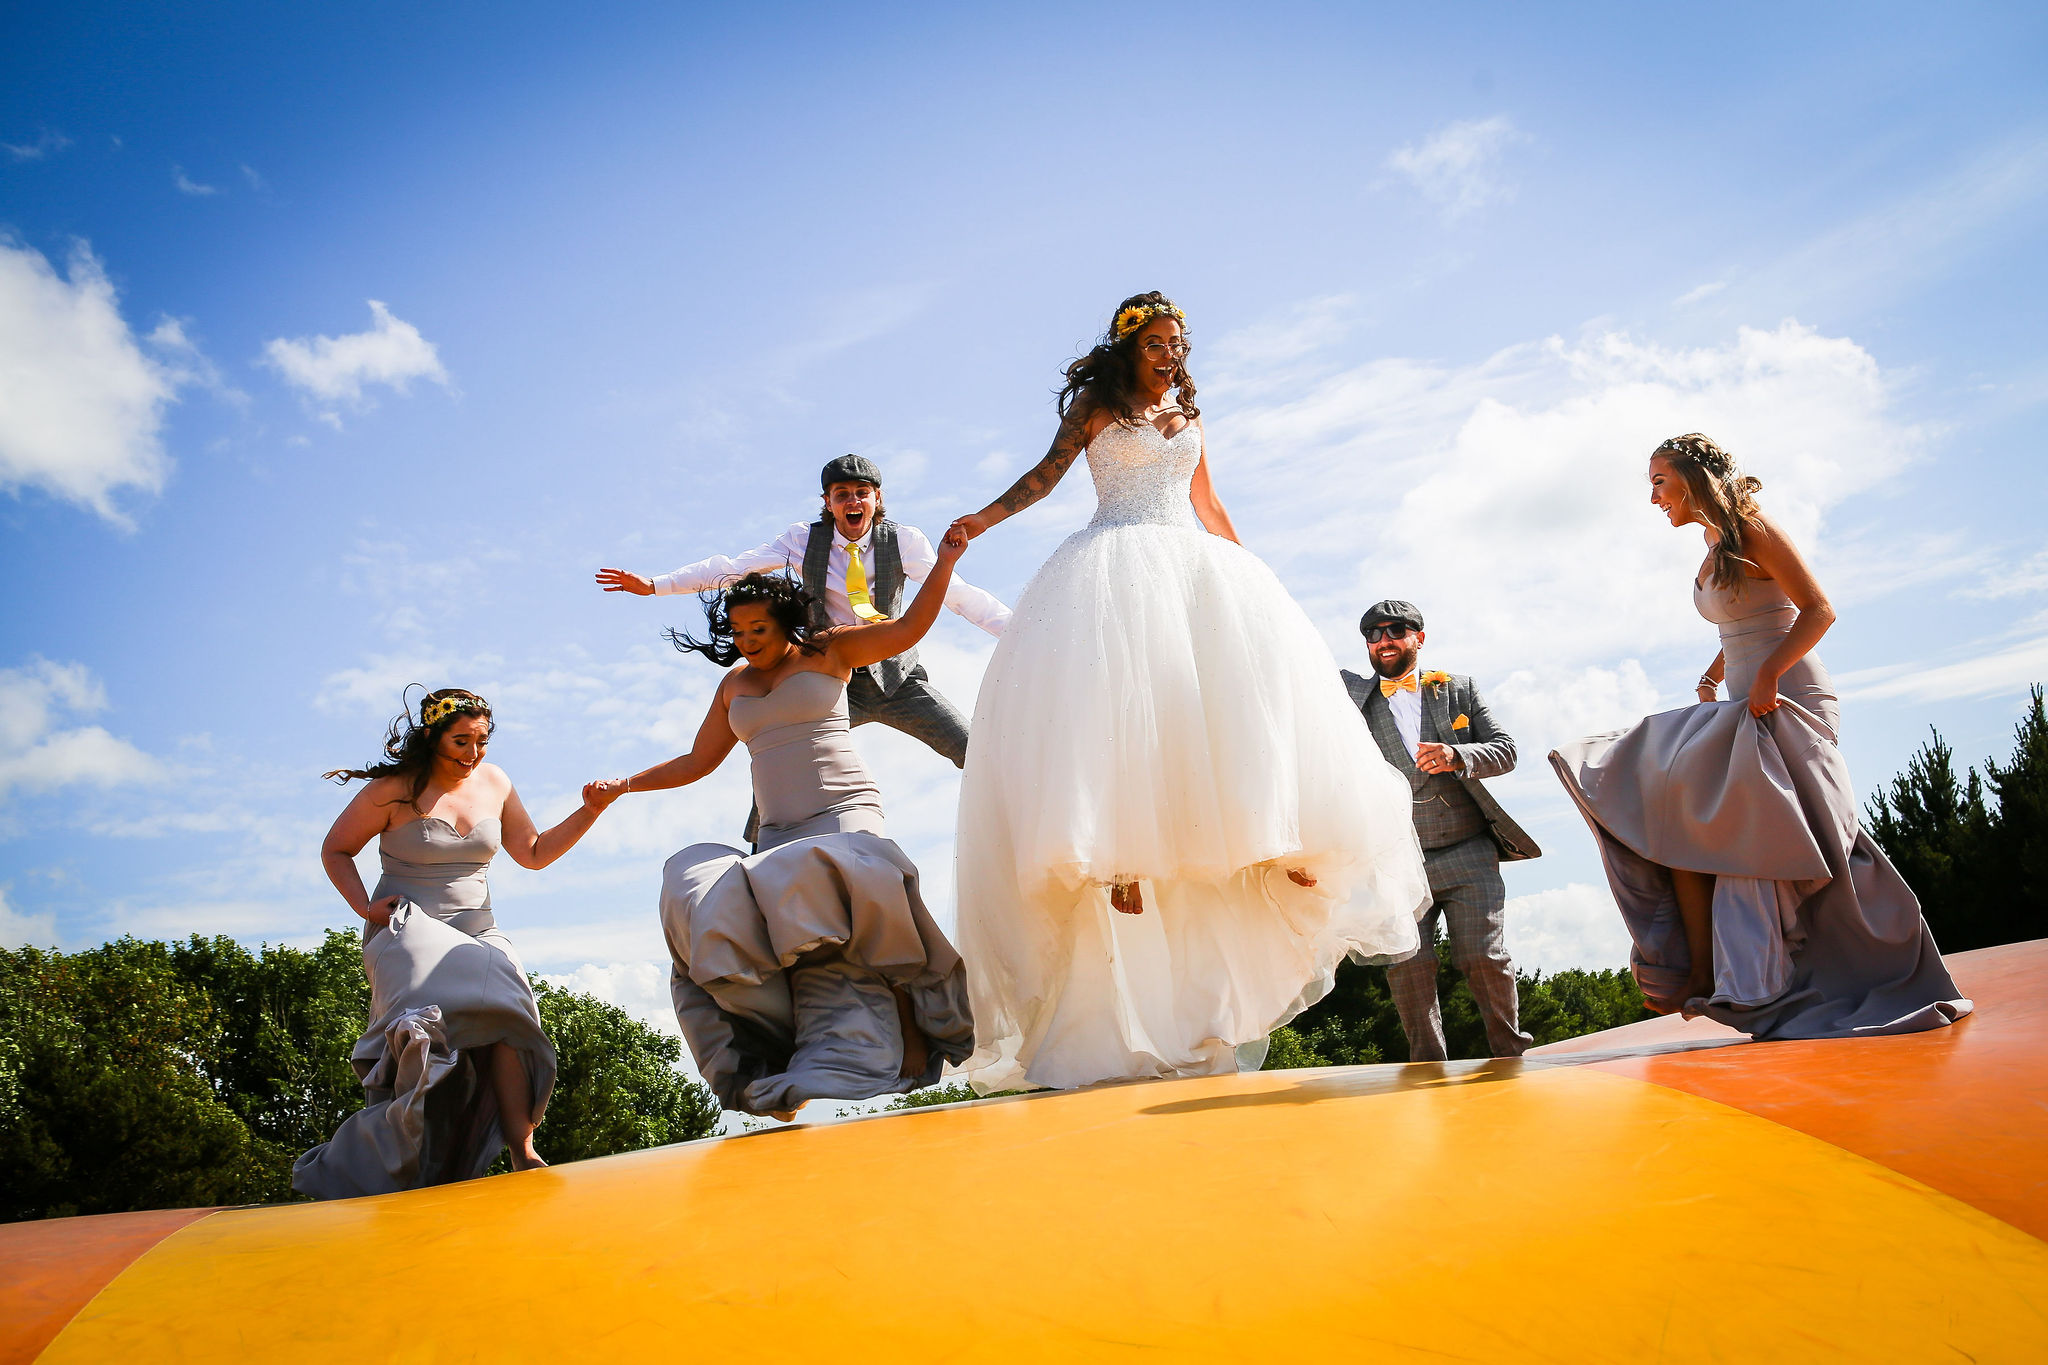 Harriet&Rhys Wedding - Magical sunflower wedding - quirky wedding with bouncy castle